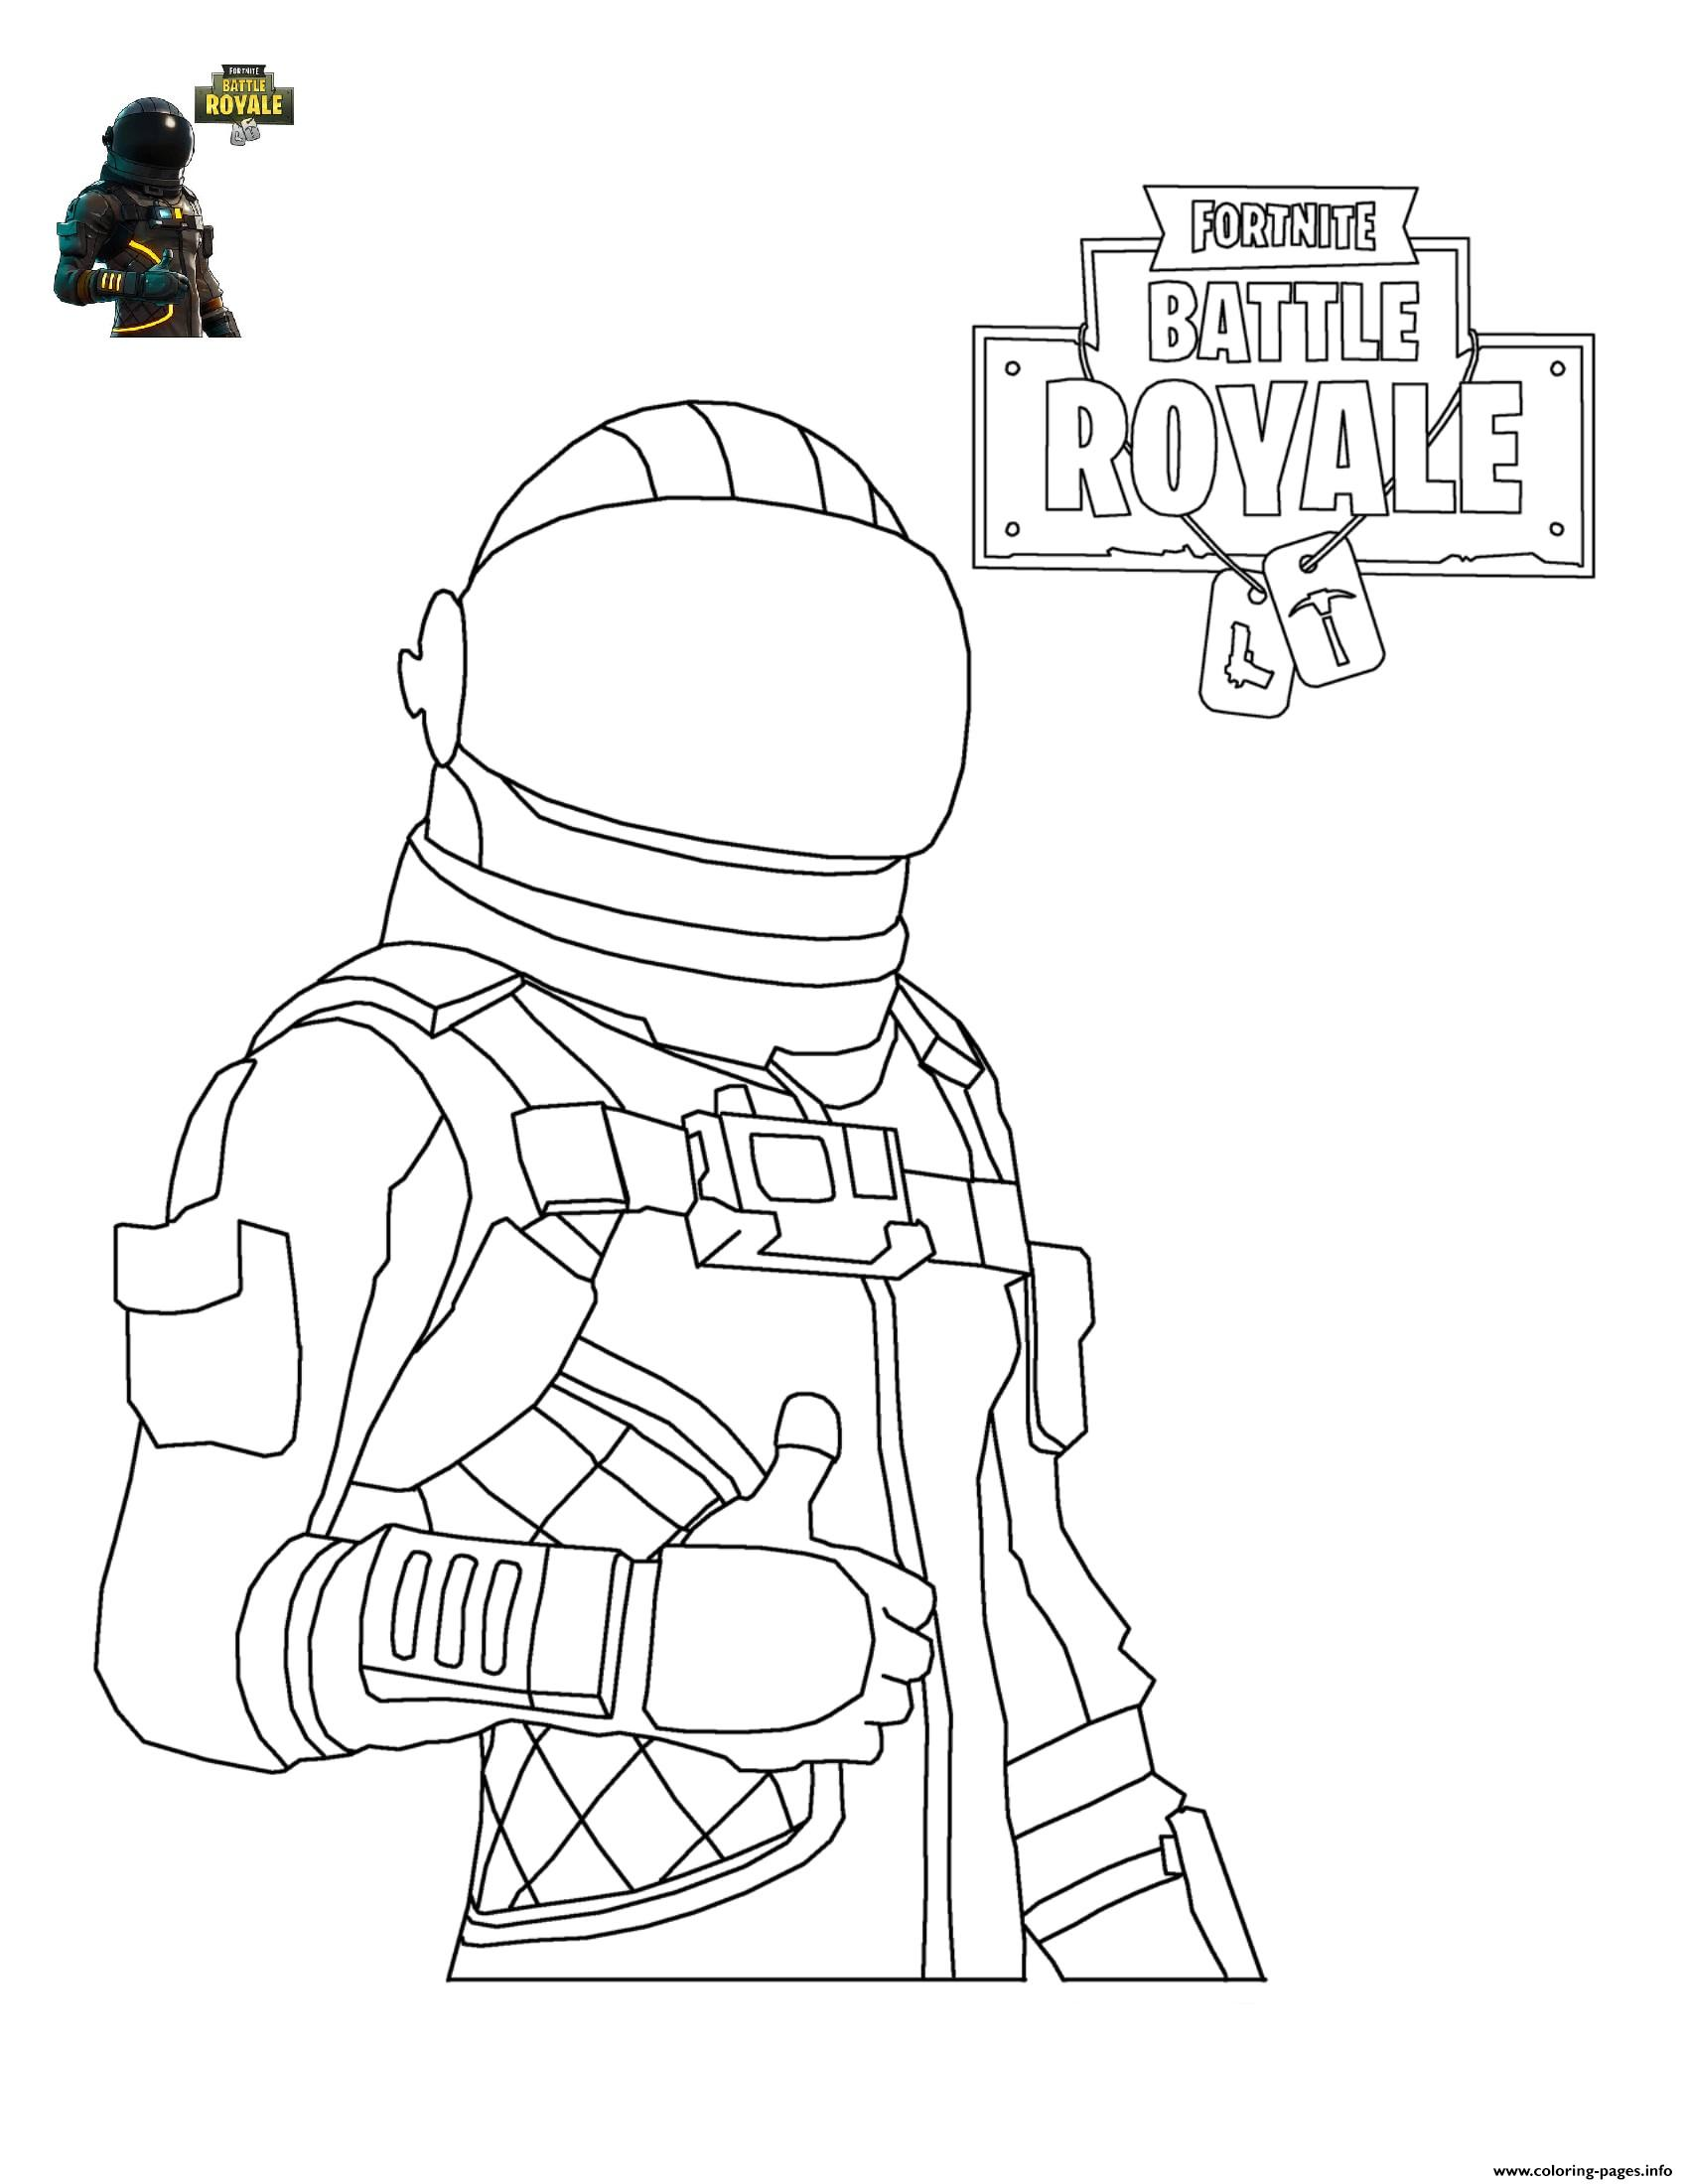 fortnite coloring pages printable Fortnite Character 4 Coloring Pages Printable fortnite coloring pages printable